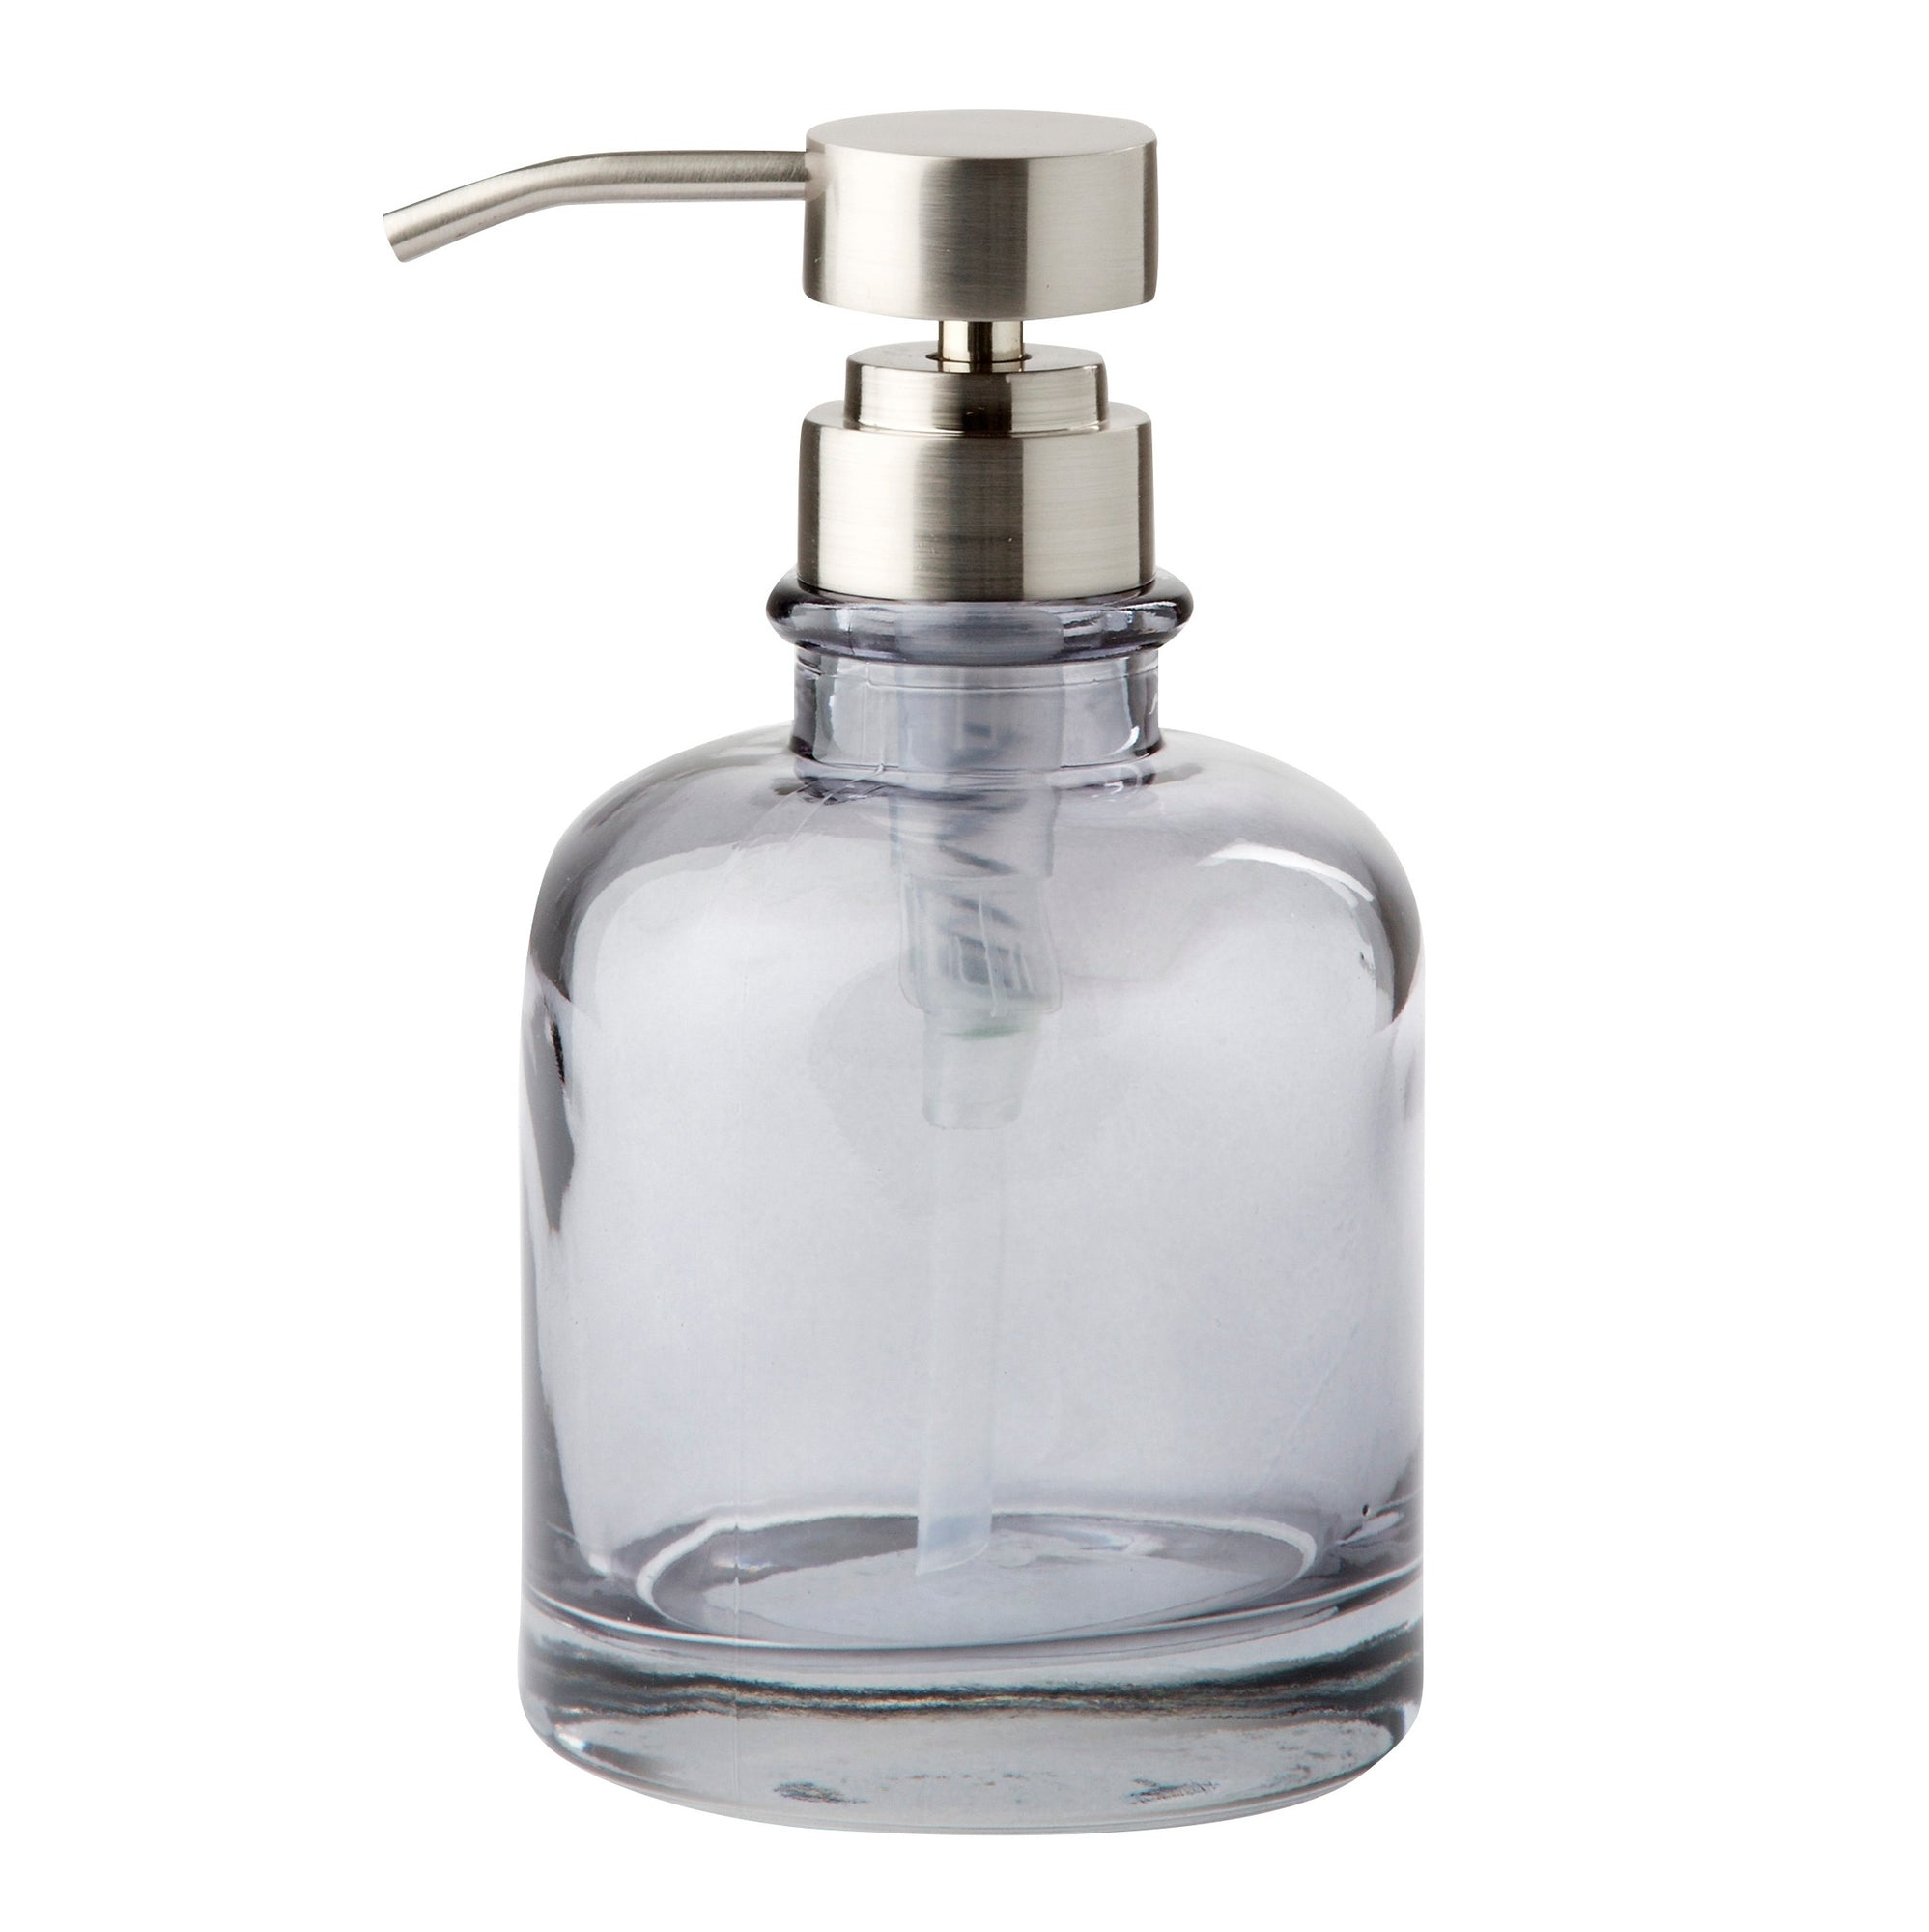 VENEZIA Low Soap Dispenser- Black